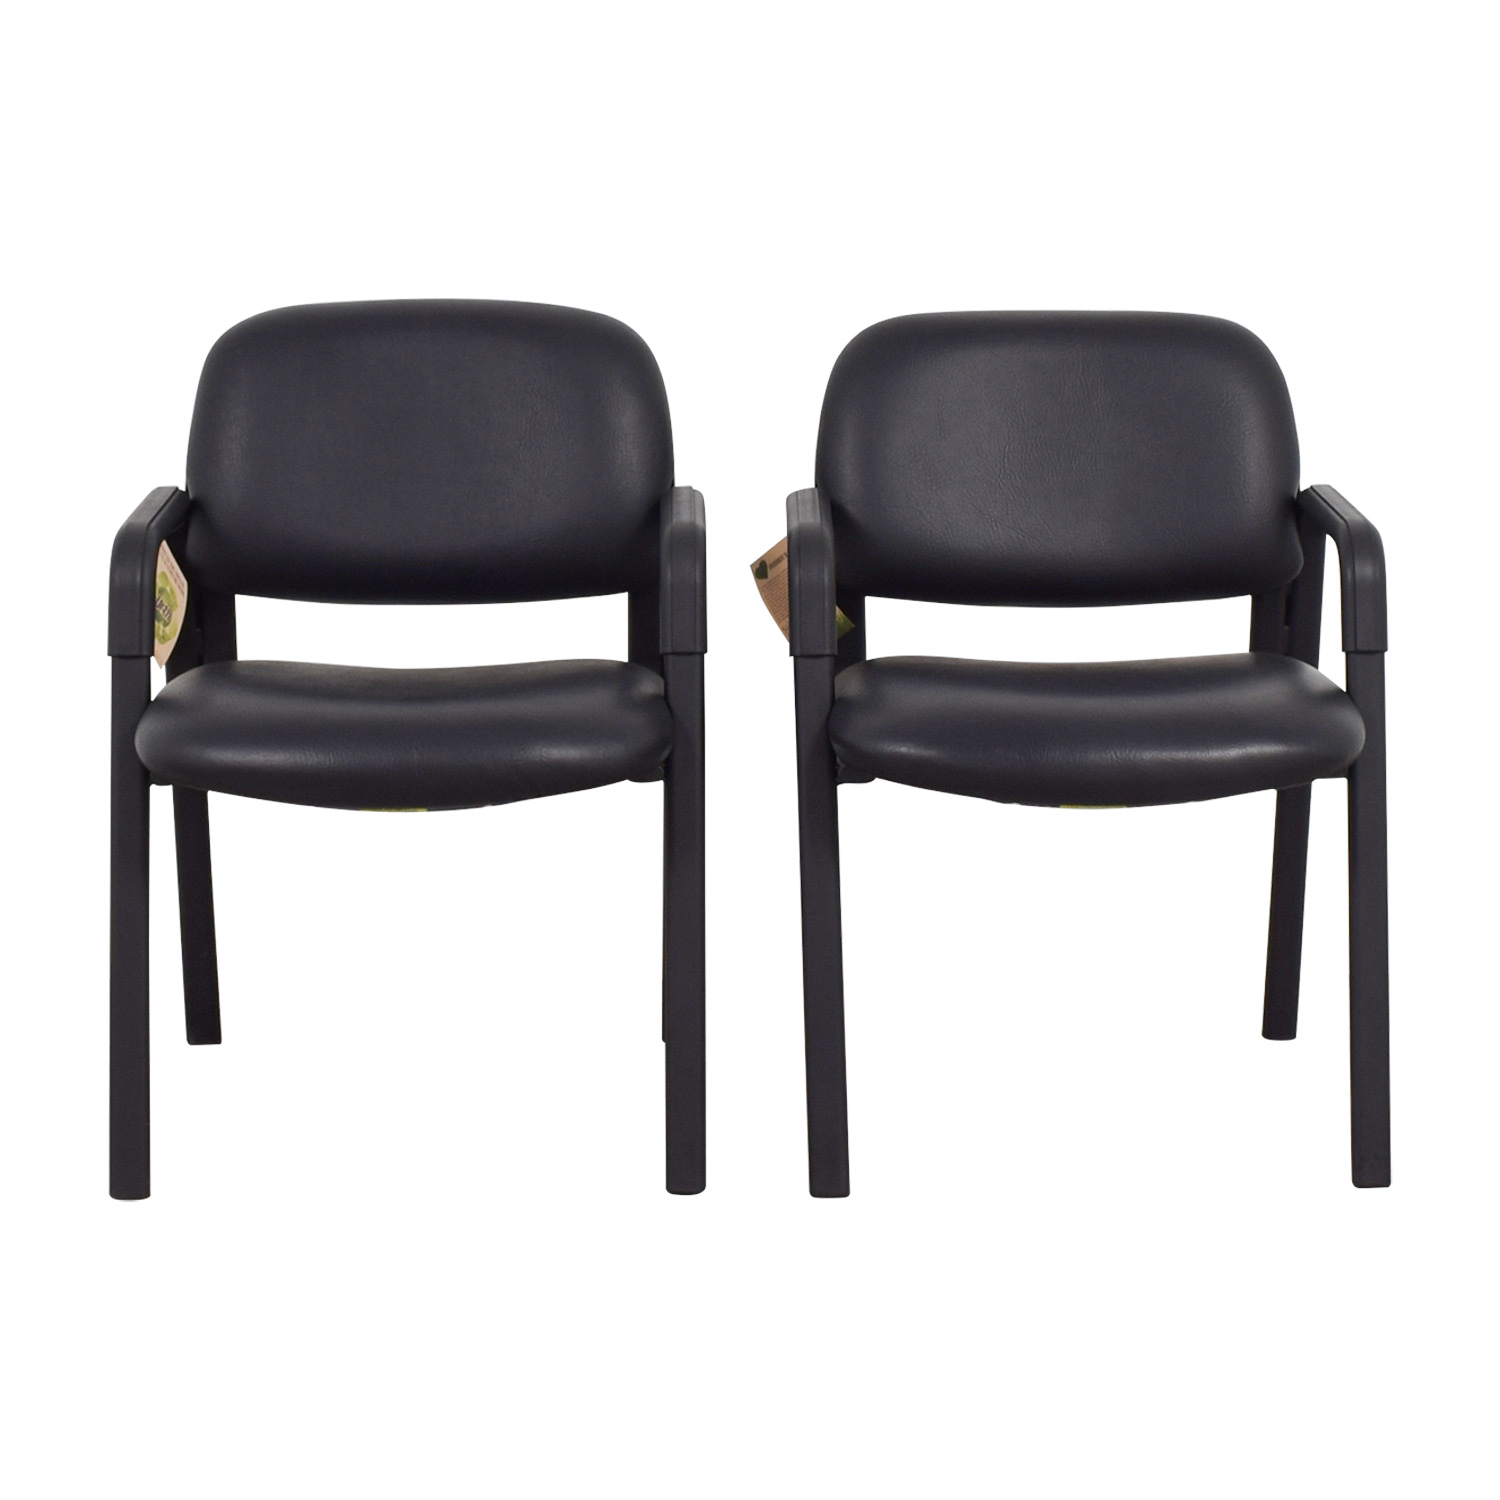 Discount Leather Chairs 90 Off Safco Urth Cava Black Leather Chairs Chairs